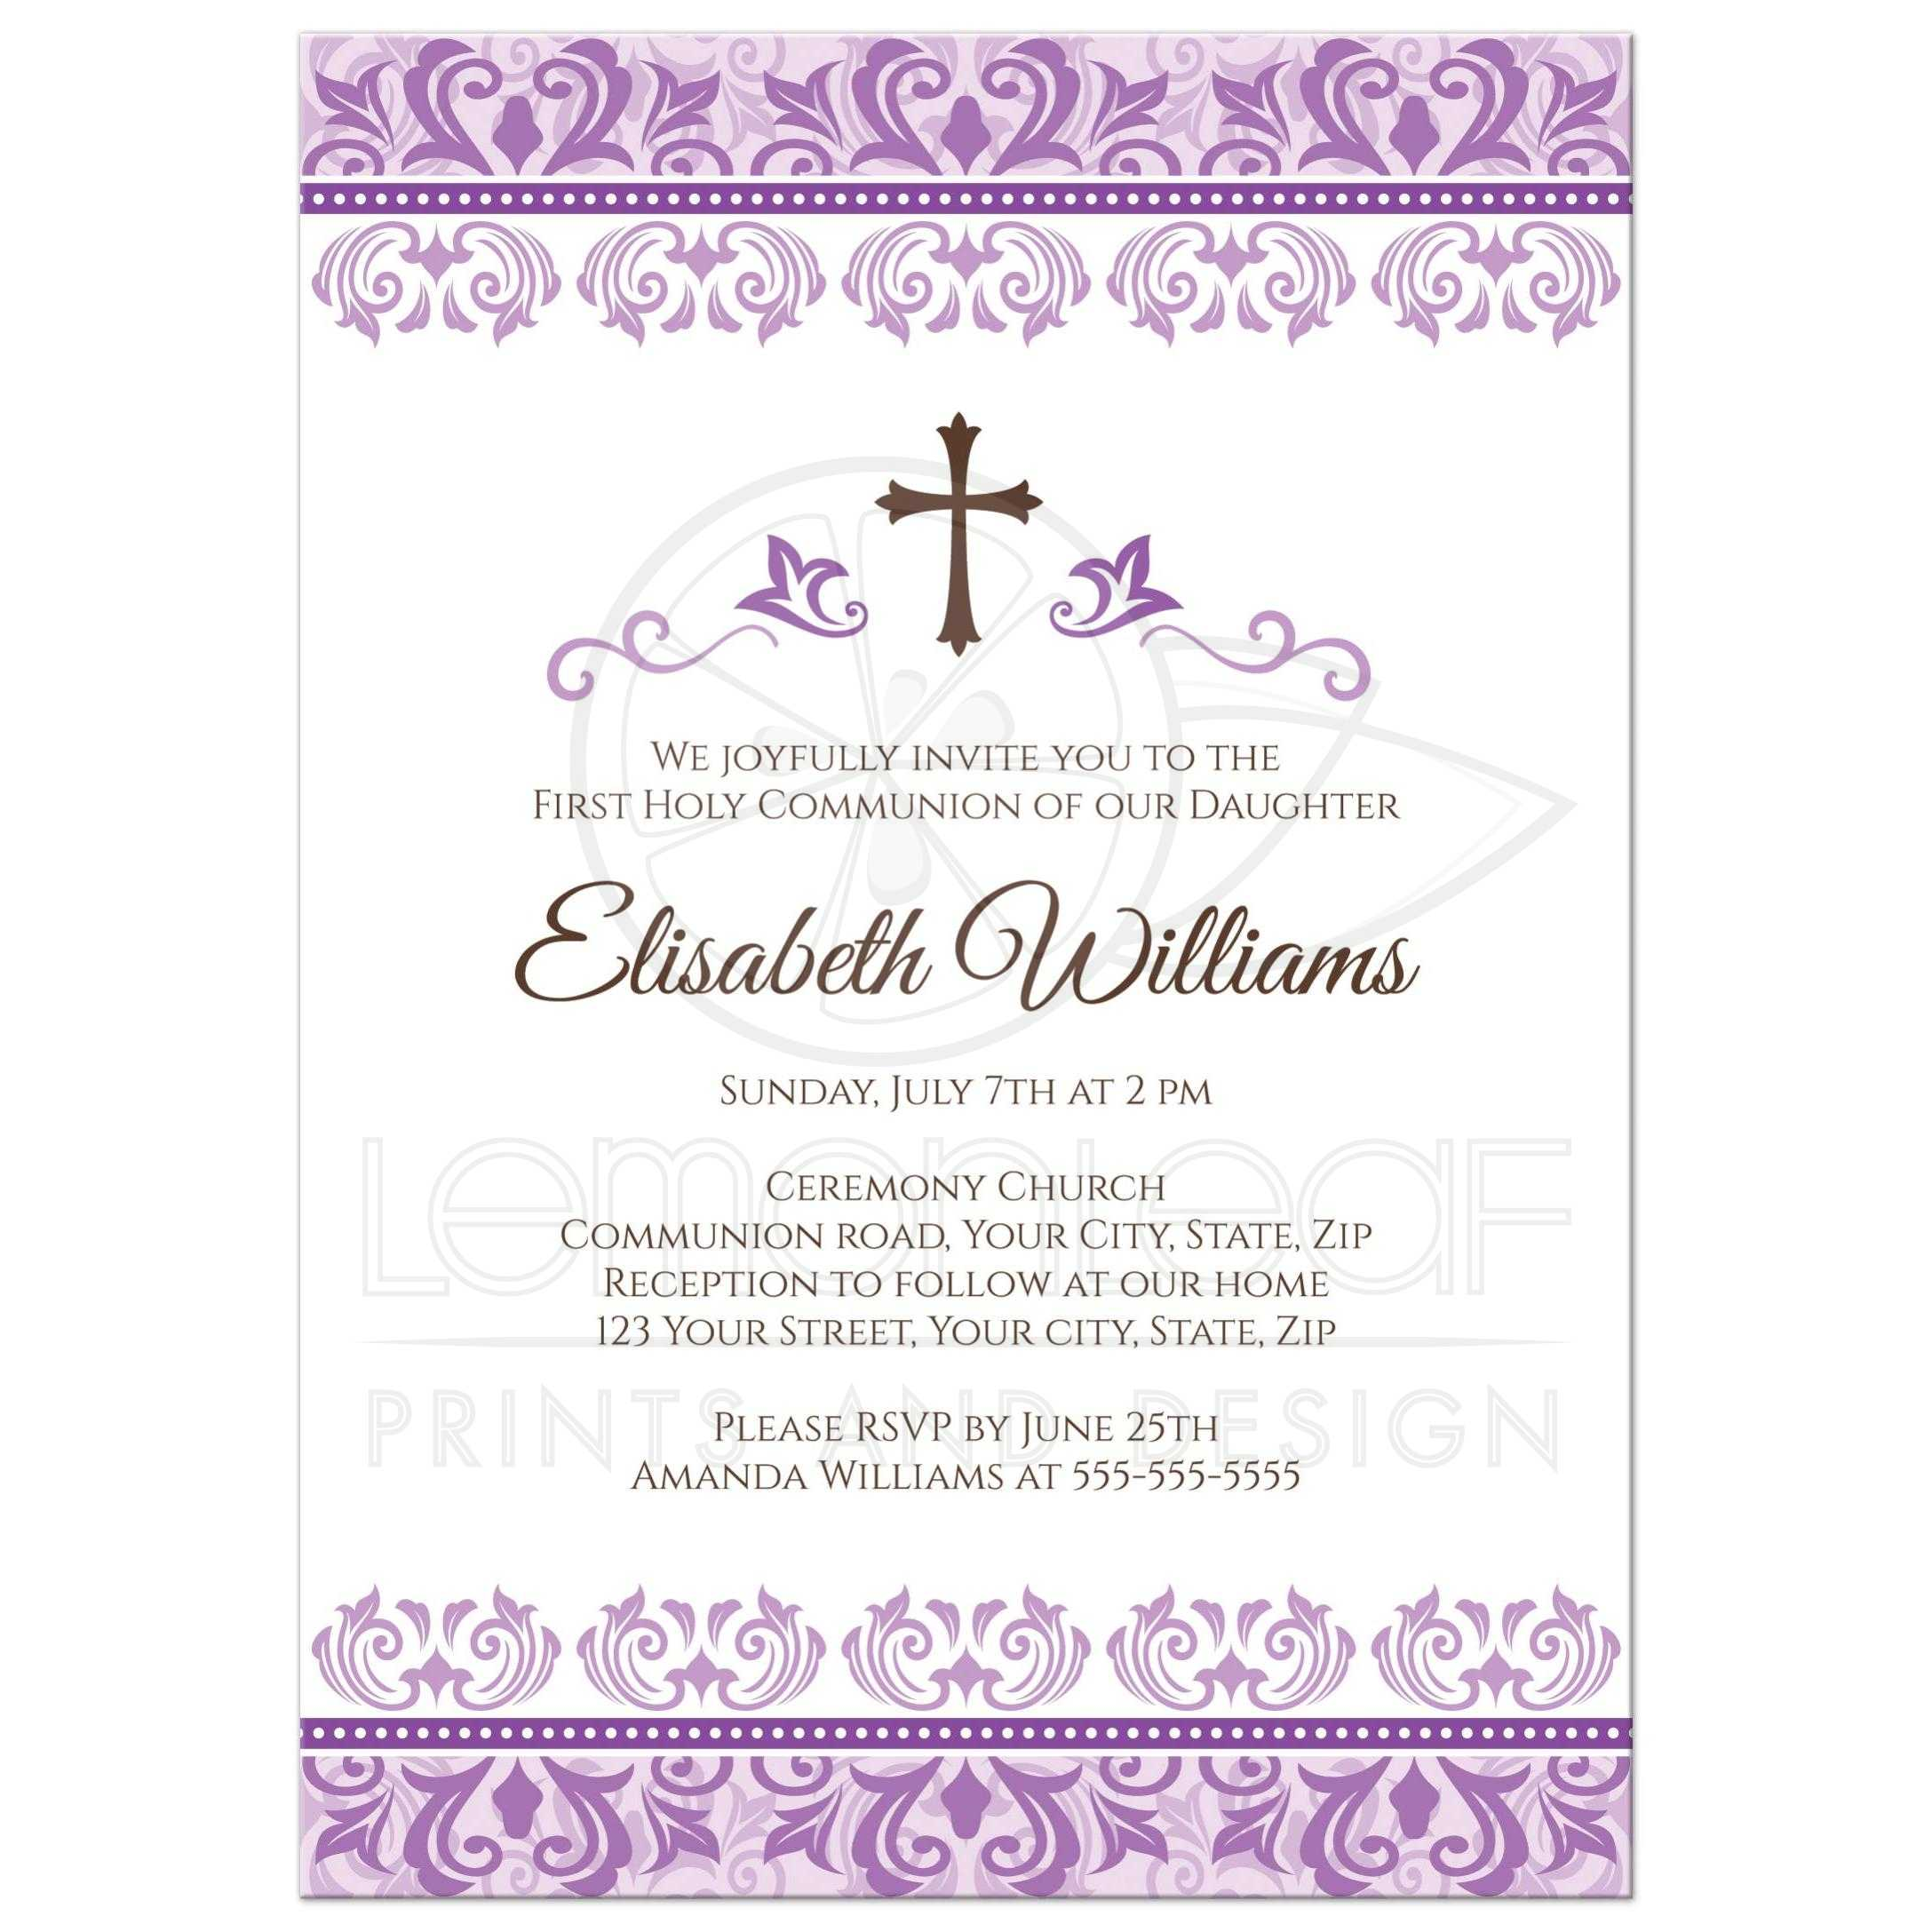 Burgundy And Gold Wedding Invitations 003 - Burgundy And Gold Wedding Invitations